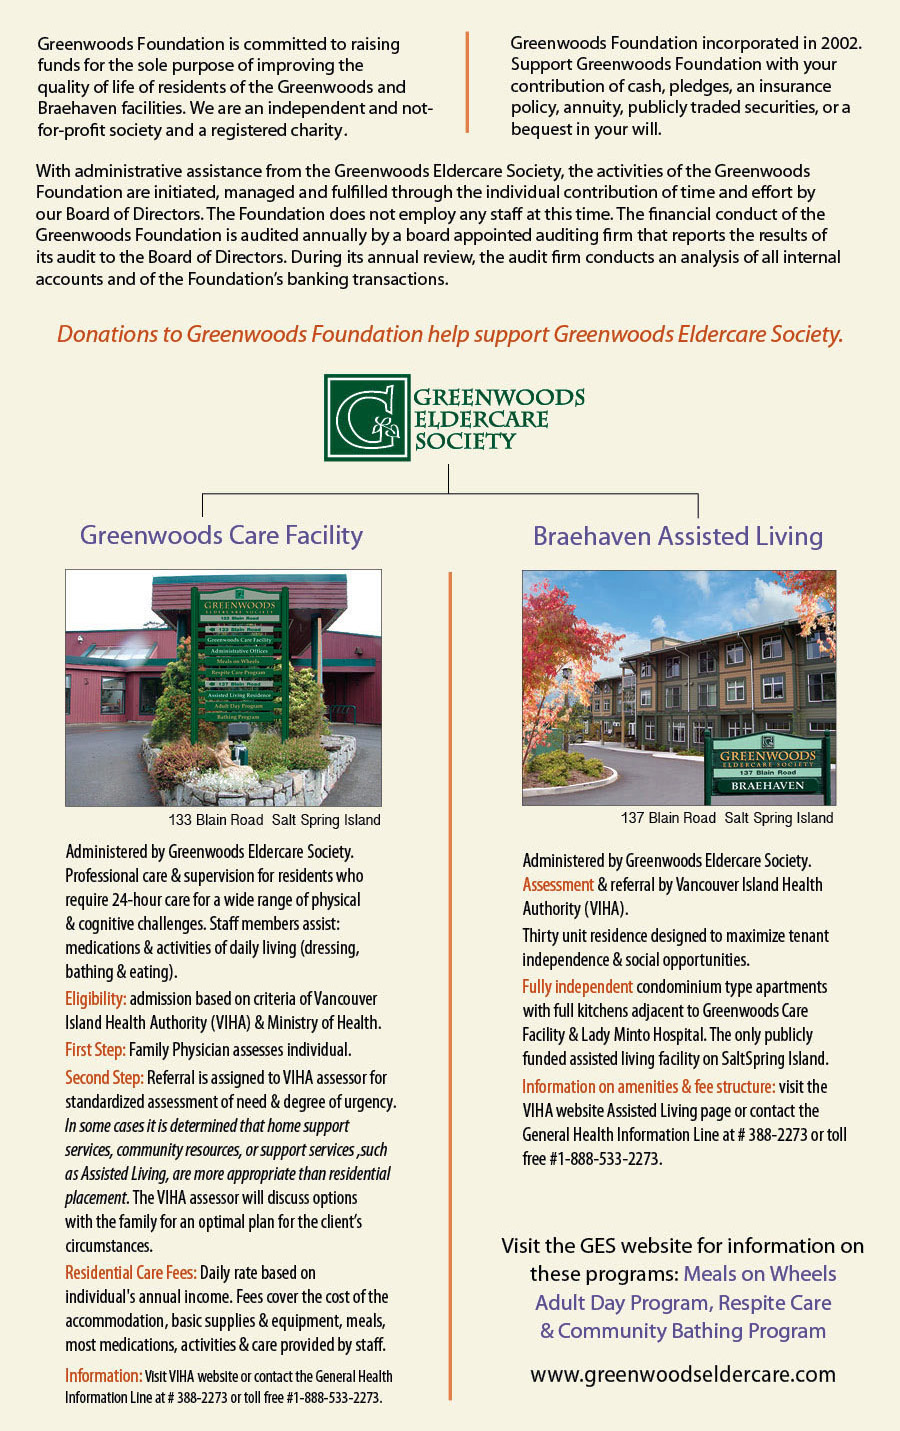 about_foundation_oct14